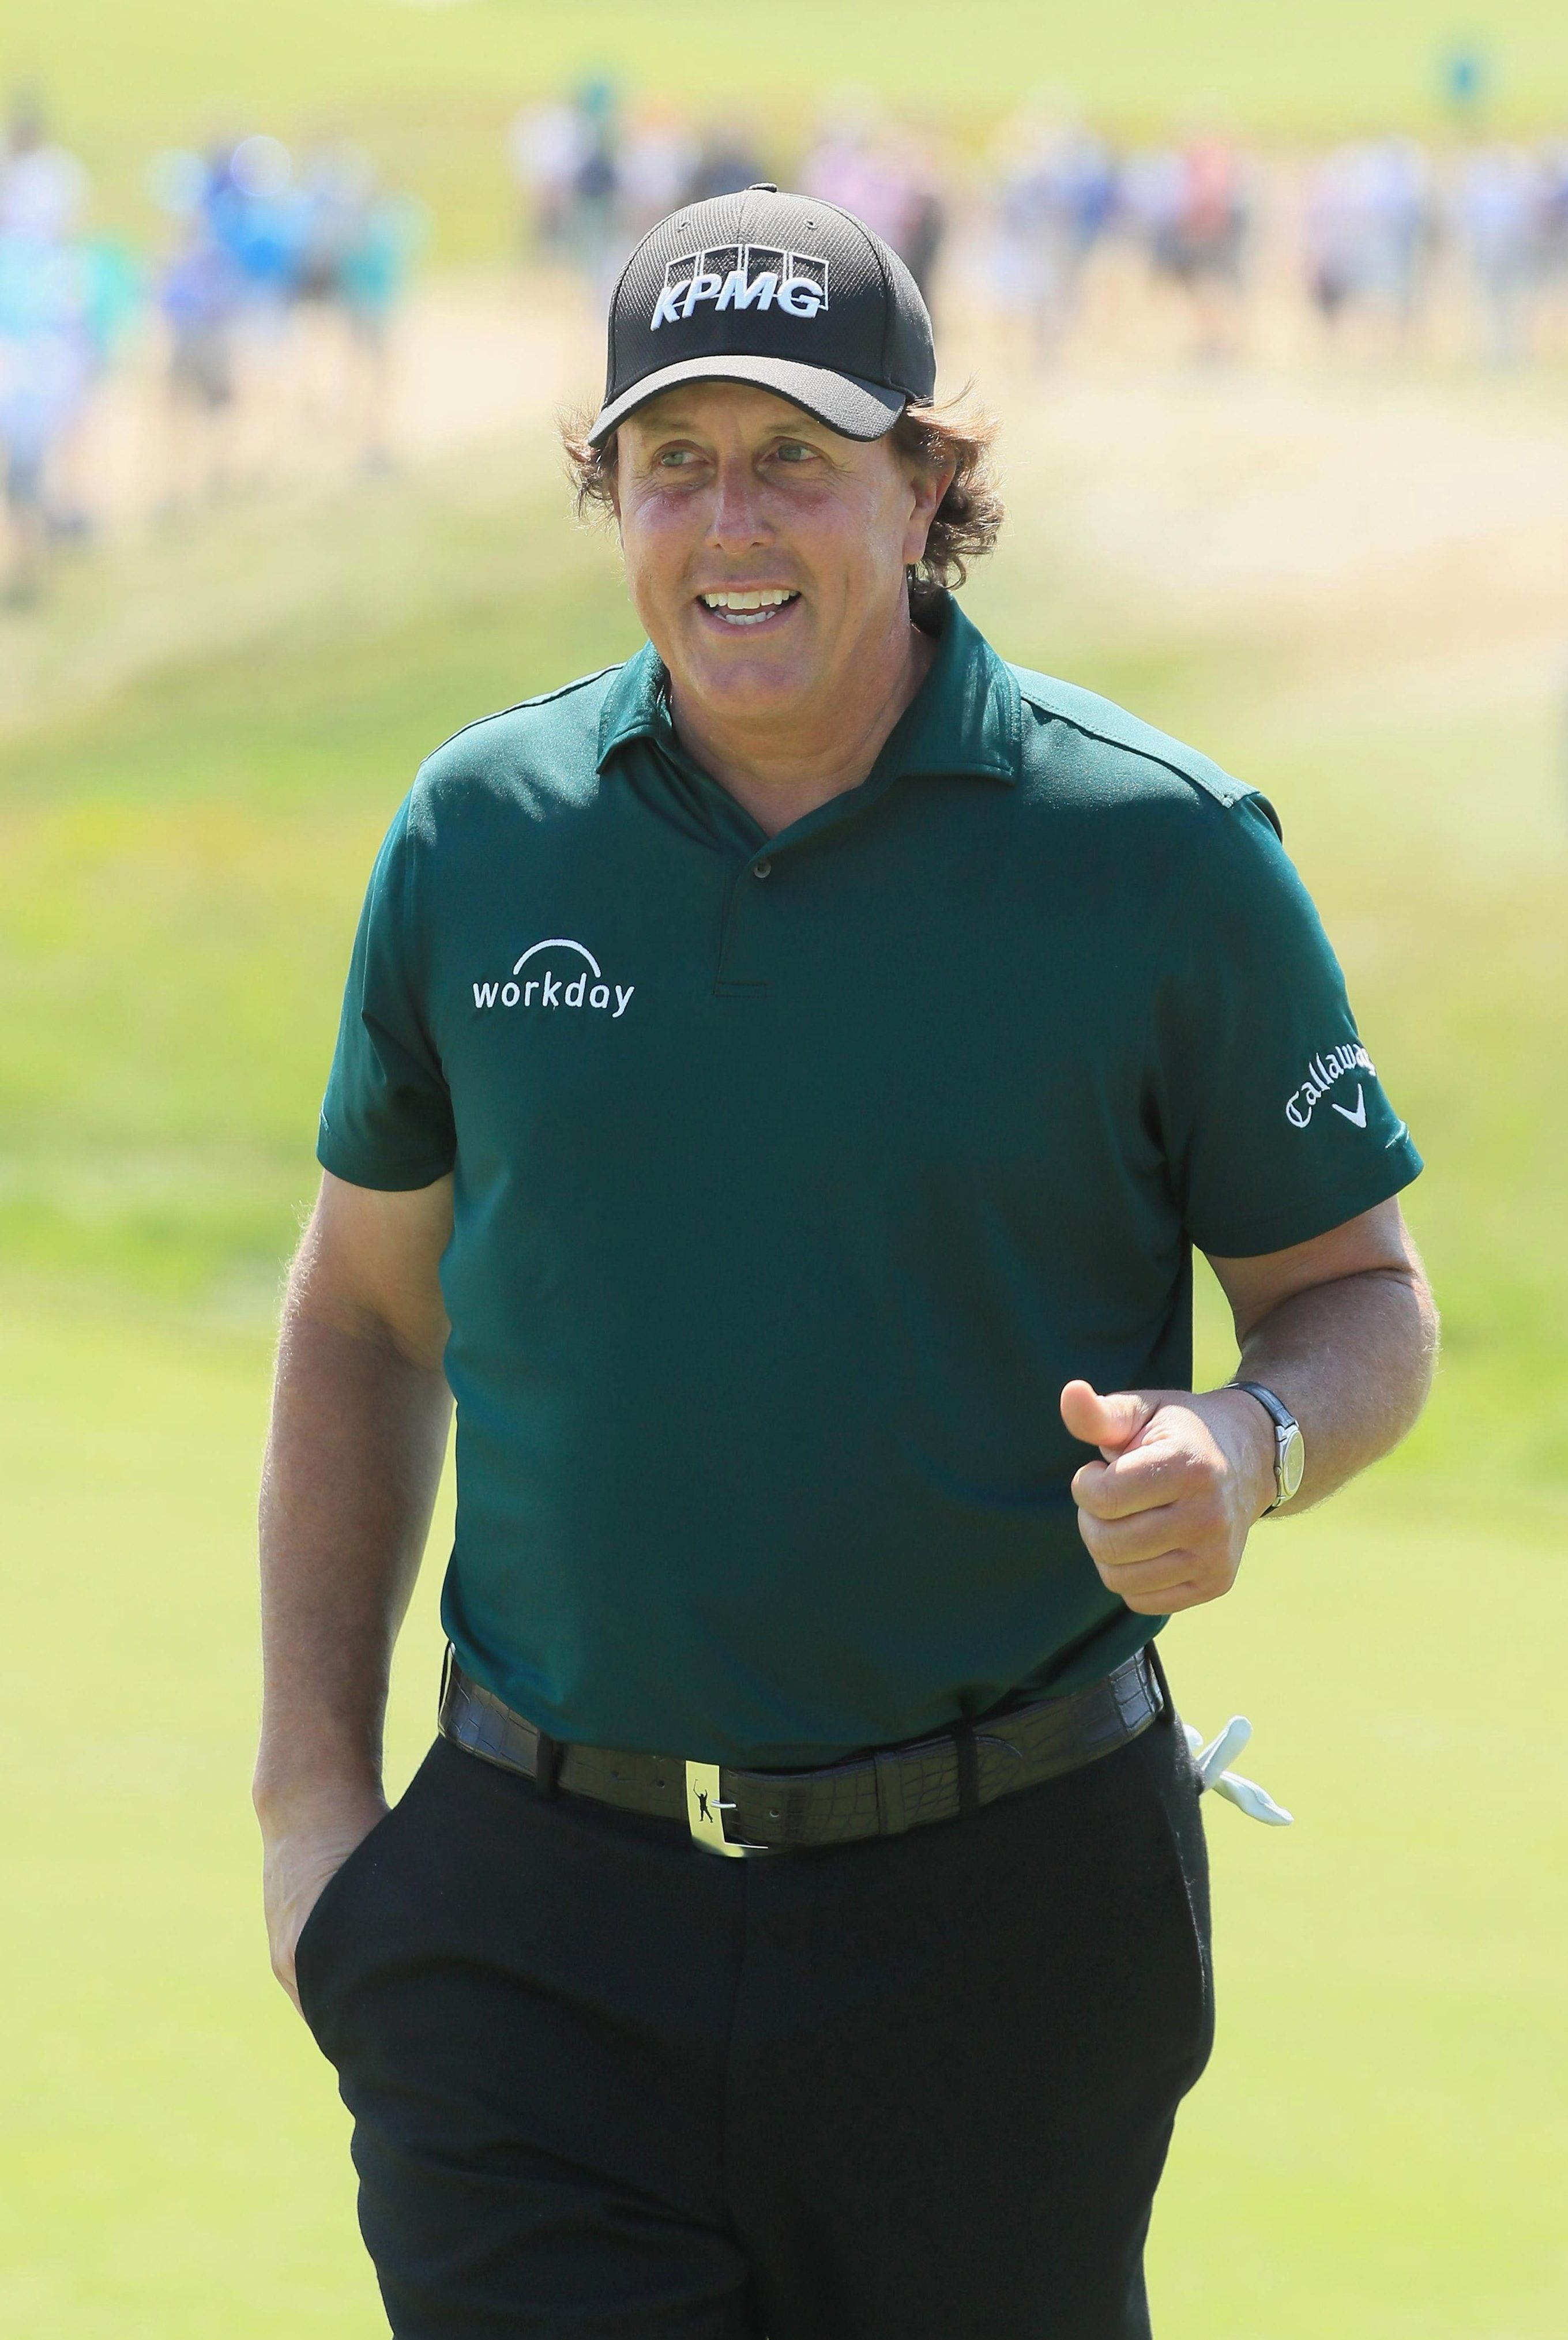 Phil Mickelson has played every Ryder Cup since 1995